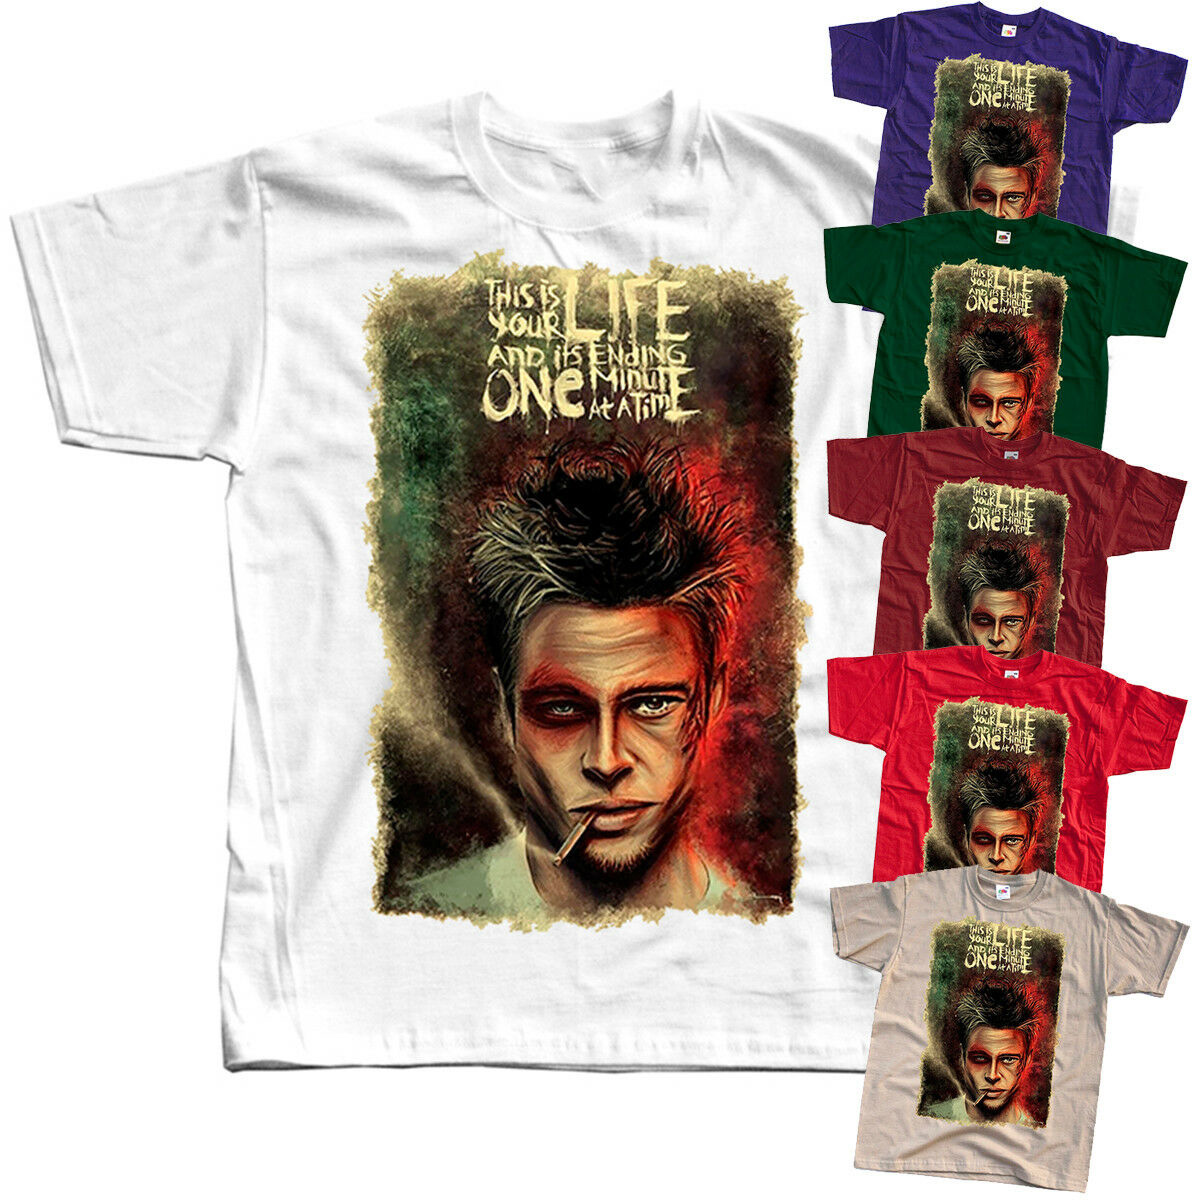 Fight Club V7, D.Fincher, Movie Poster 1999, T-Shirt (WHITE) All Sizes S To 3XL Retro Leisure Breathable Tee Shirt